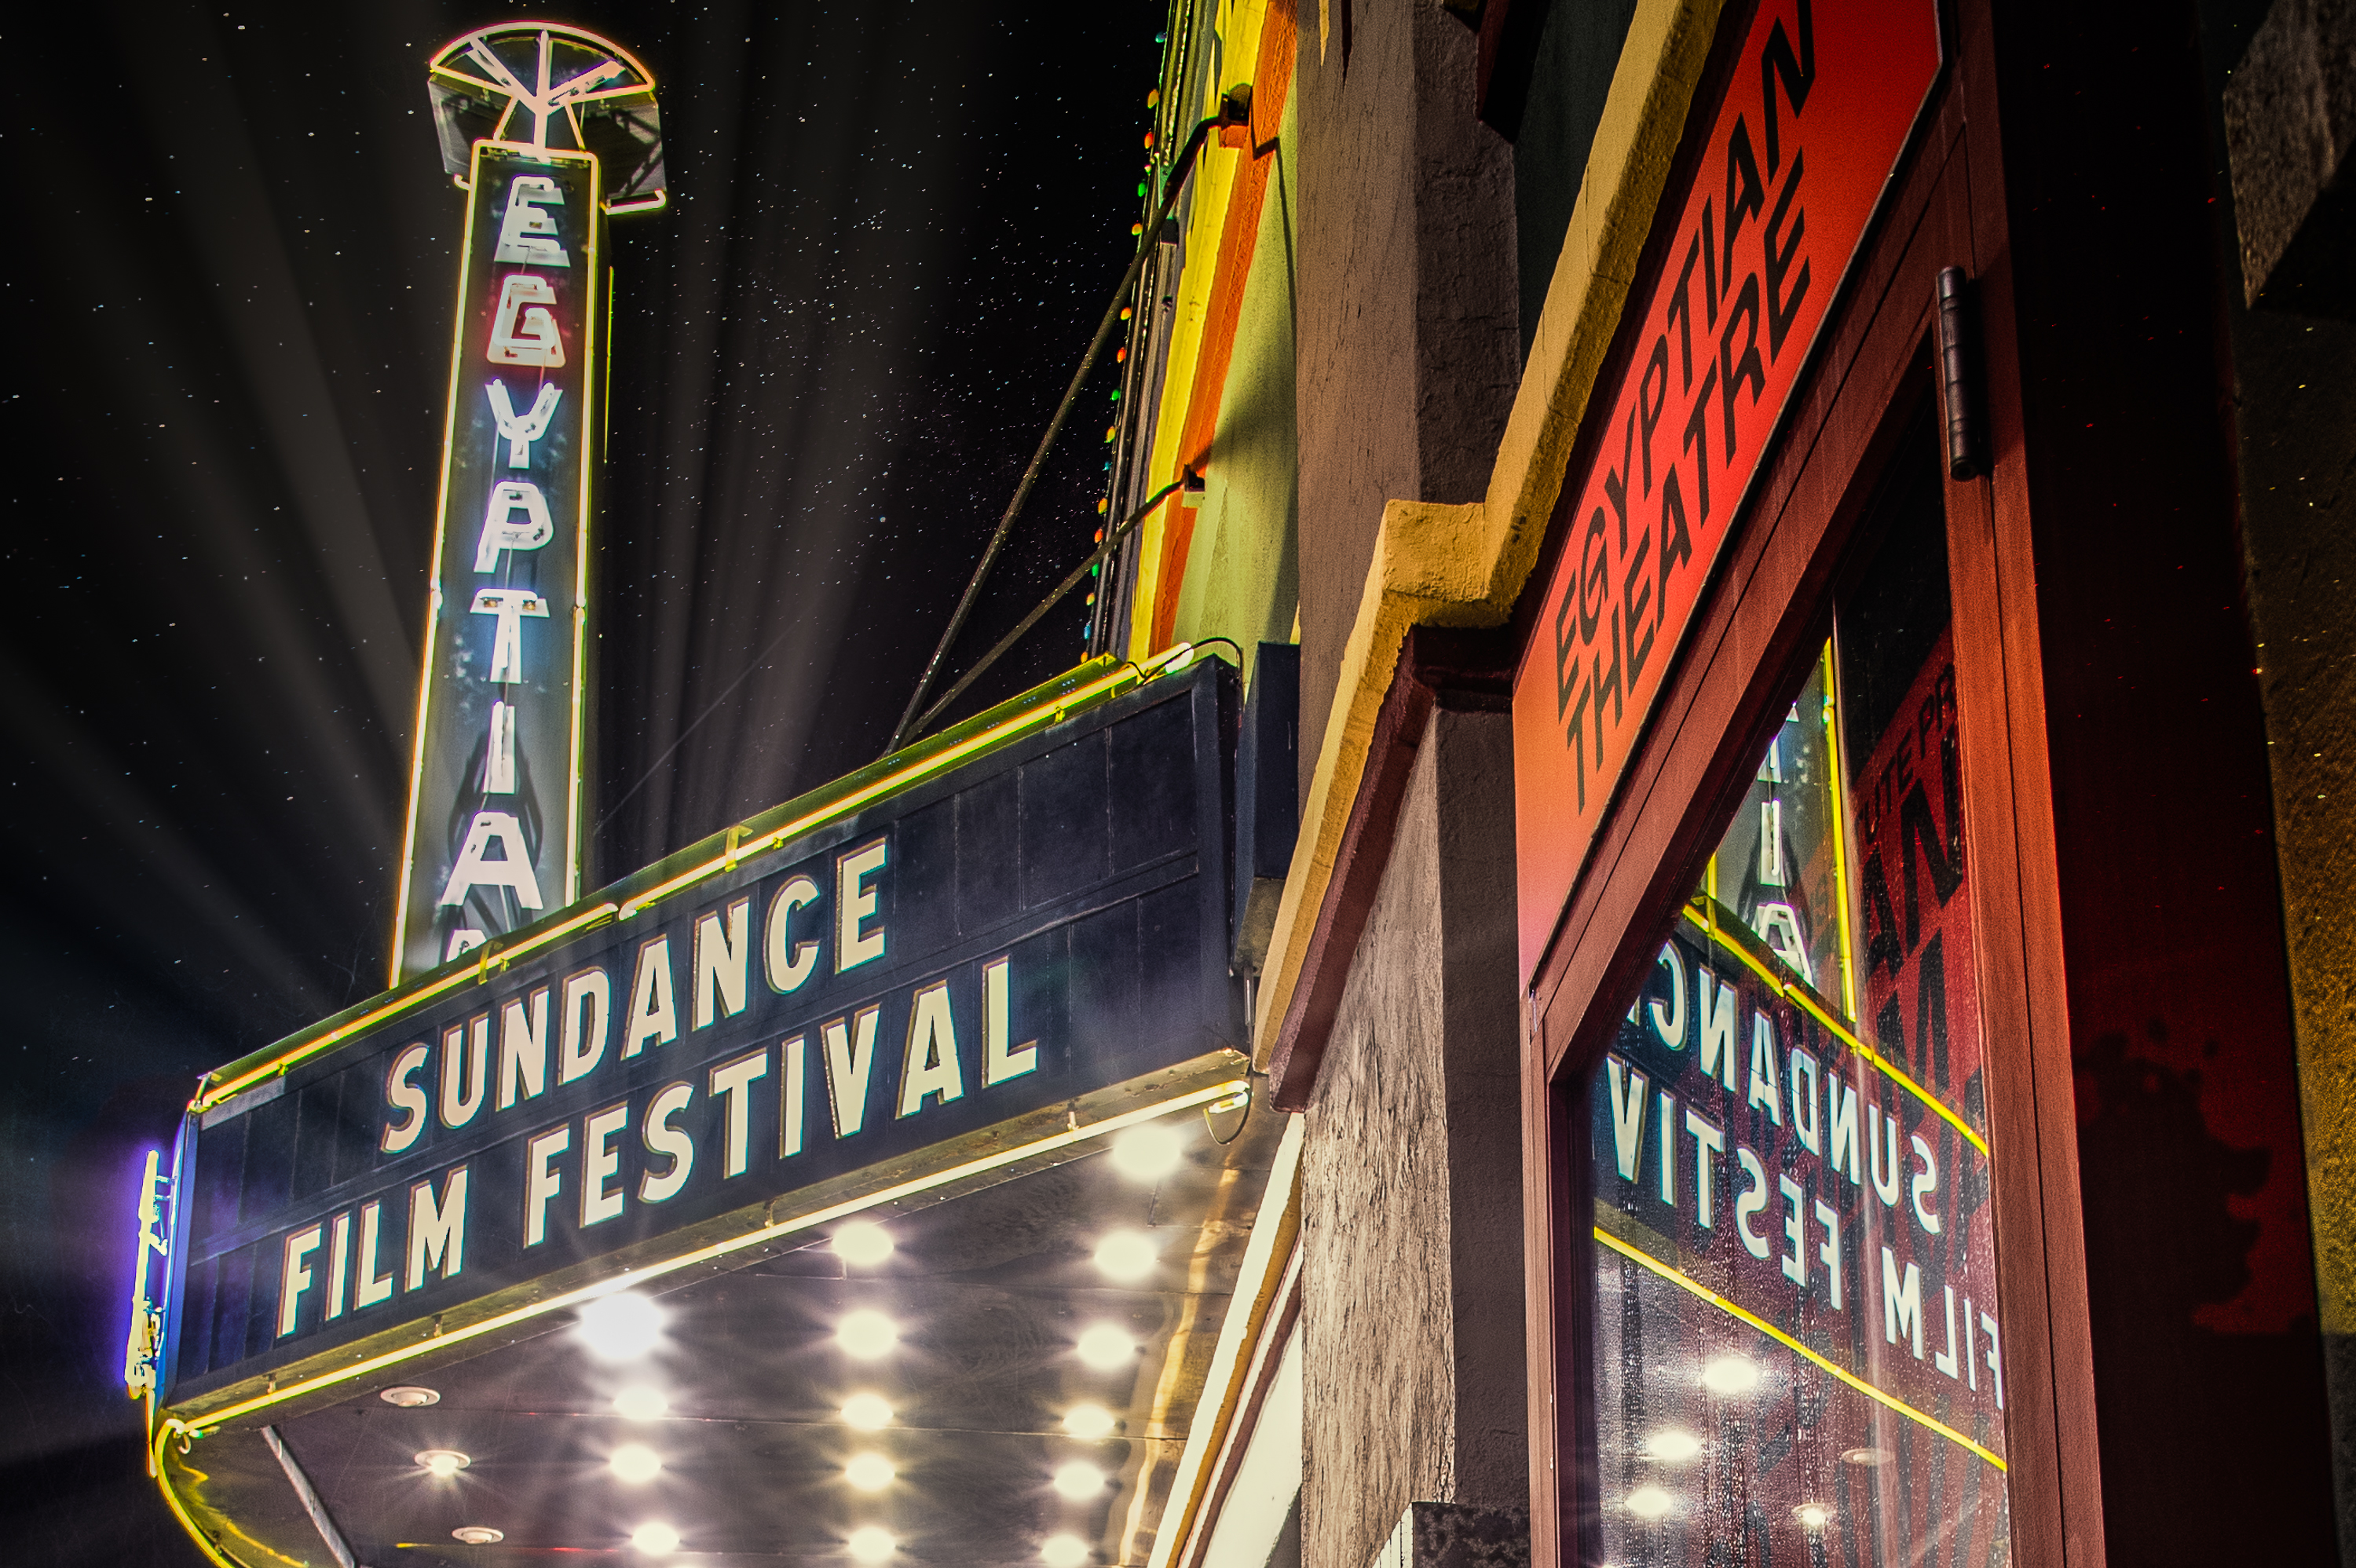 a photo of the Egyptian Theater marquee at night saying Sundance Film Festival